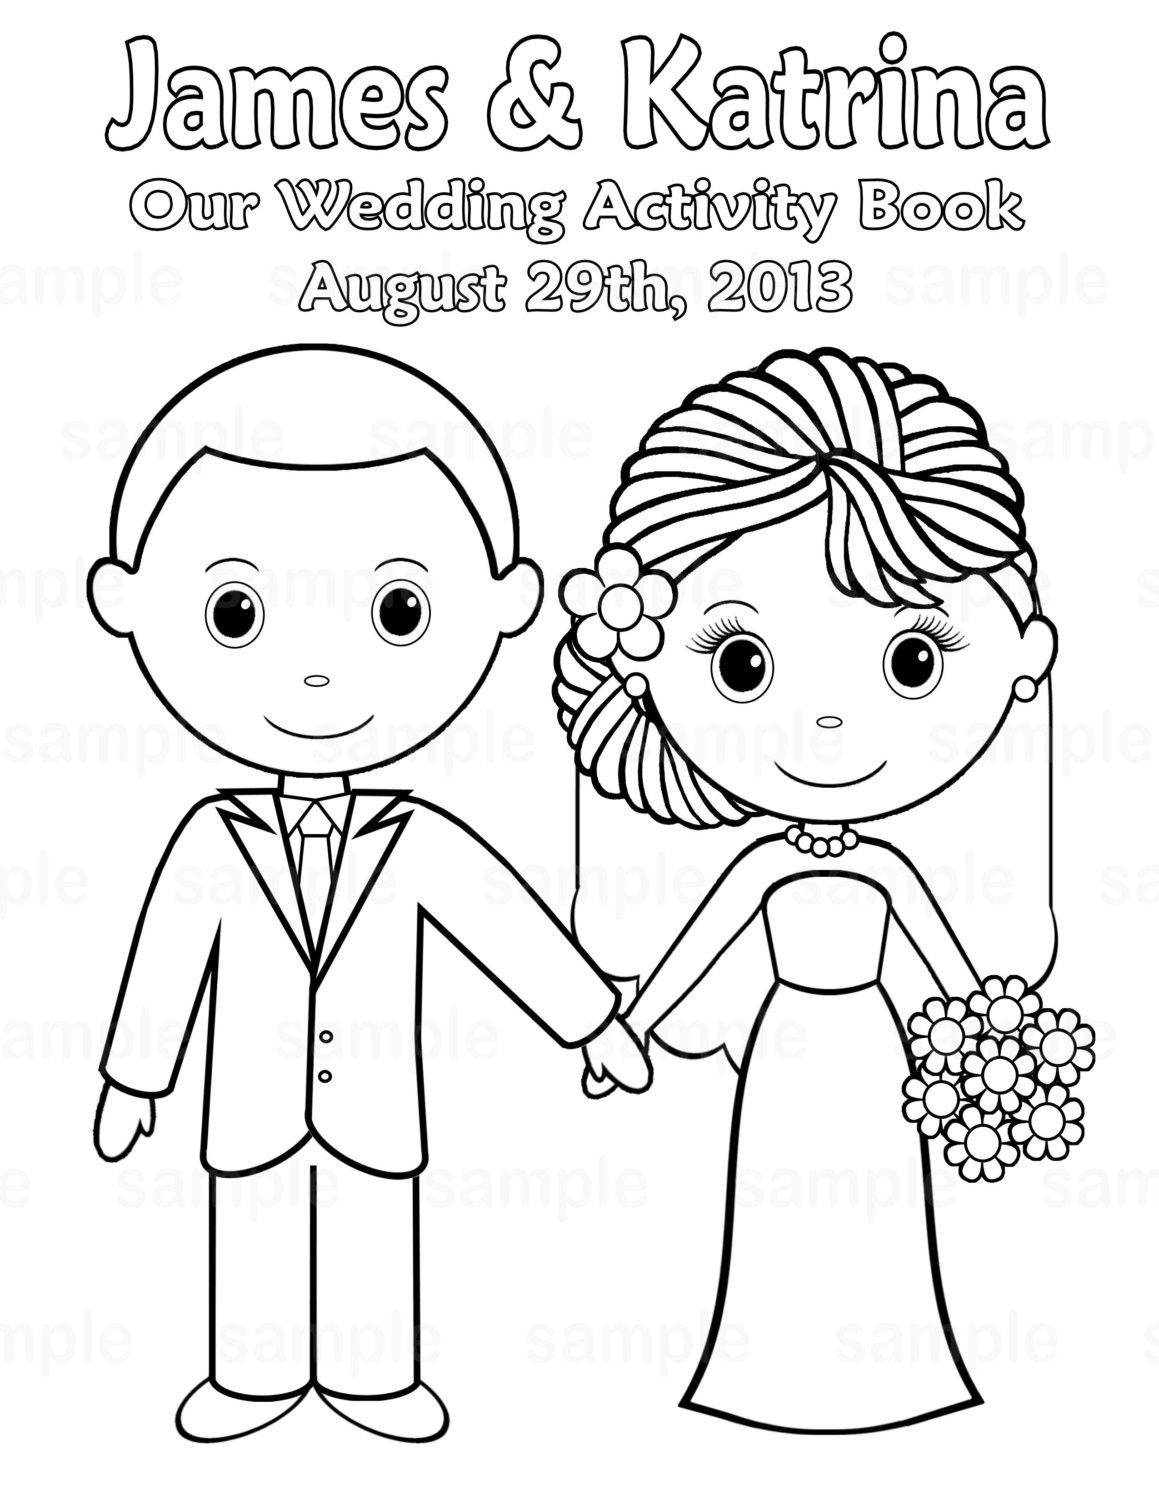 Free Printable Wedding Coloring Pages | Free Printable Wedding - Wedding Coloring Book Free Printable